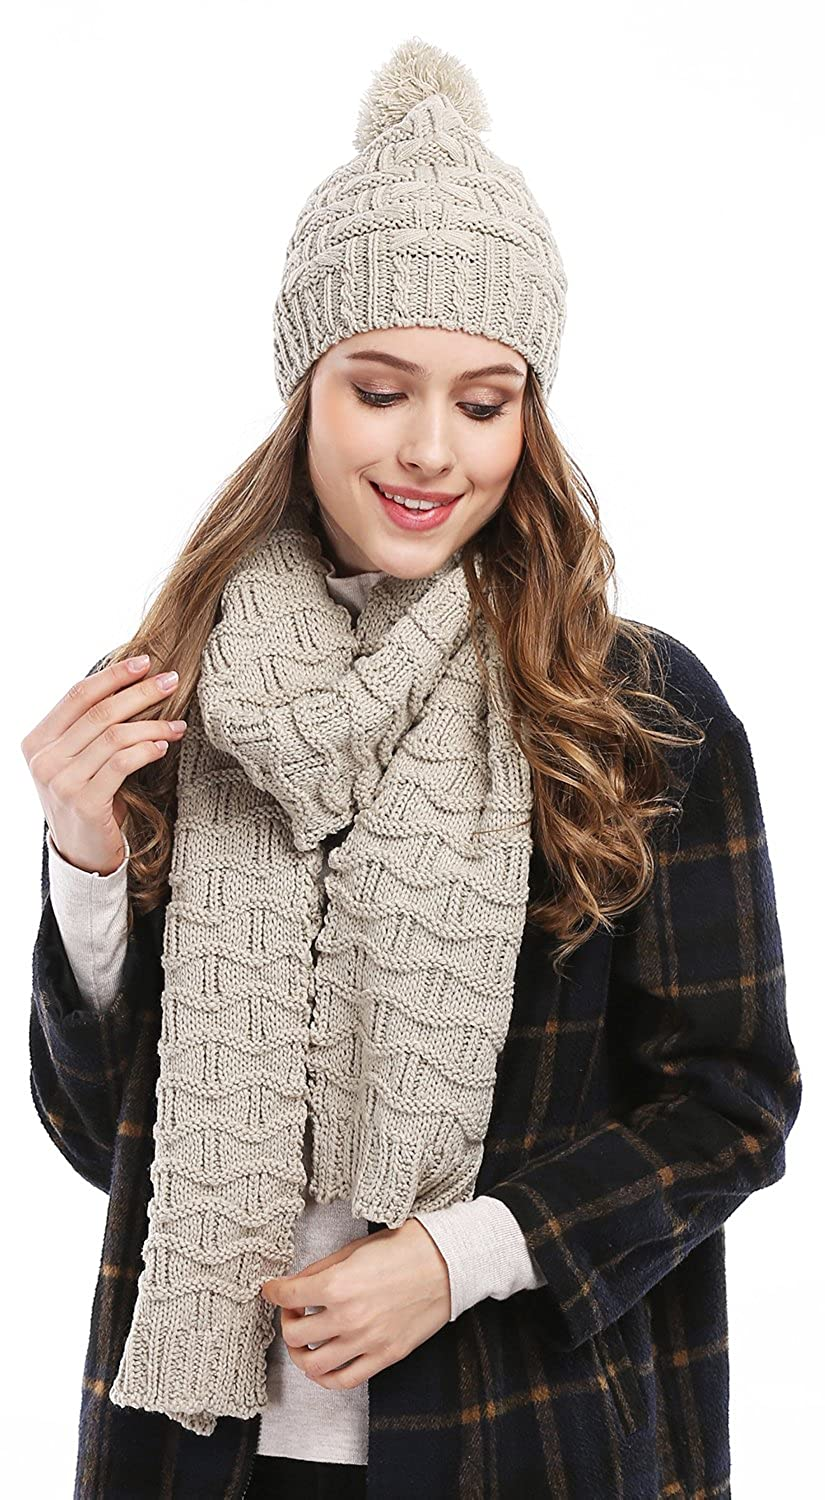 945c7caa9680f Bienvenu Women Fashion Winter Warm Knitted Scarf and Hat Set Skullcaps,  Beige at Amazon Women's Clothing store: